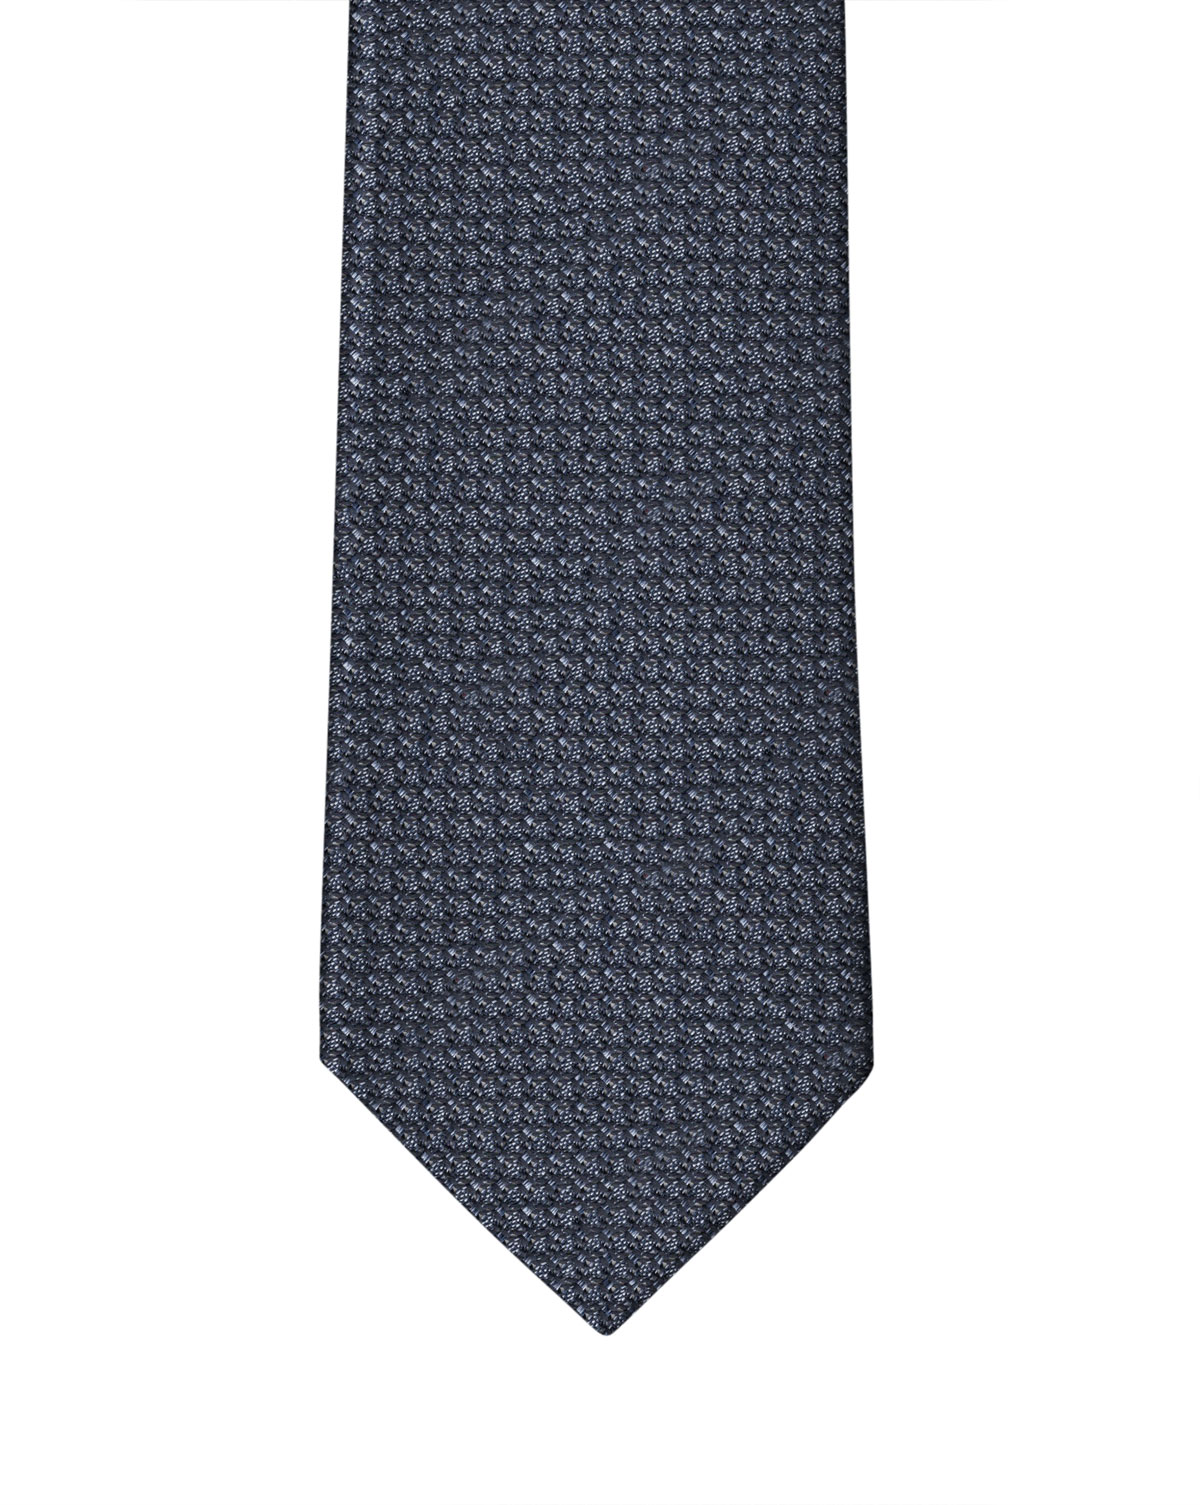 Denim Solid Necktie